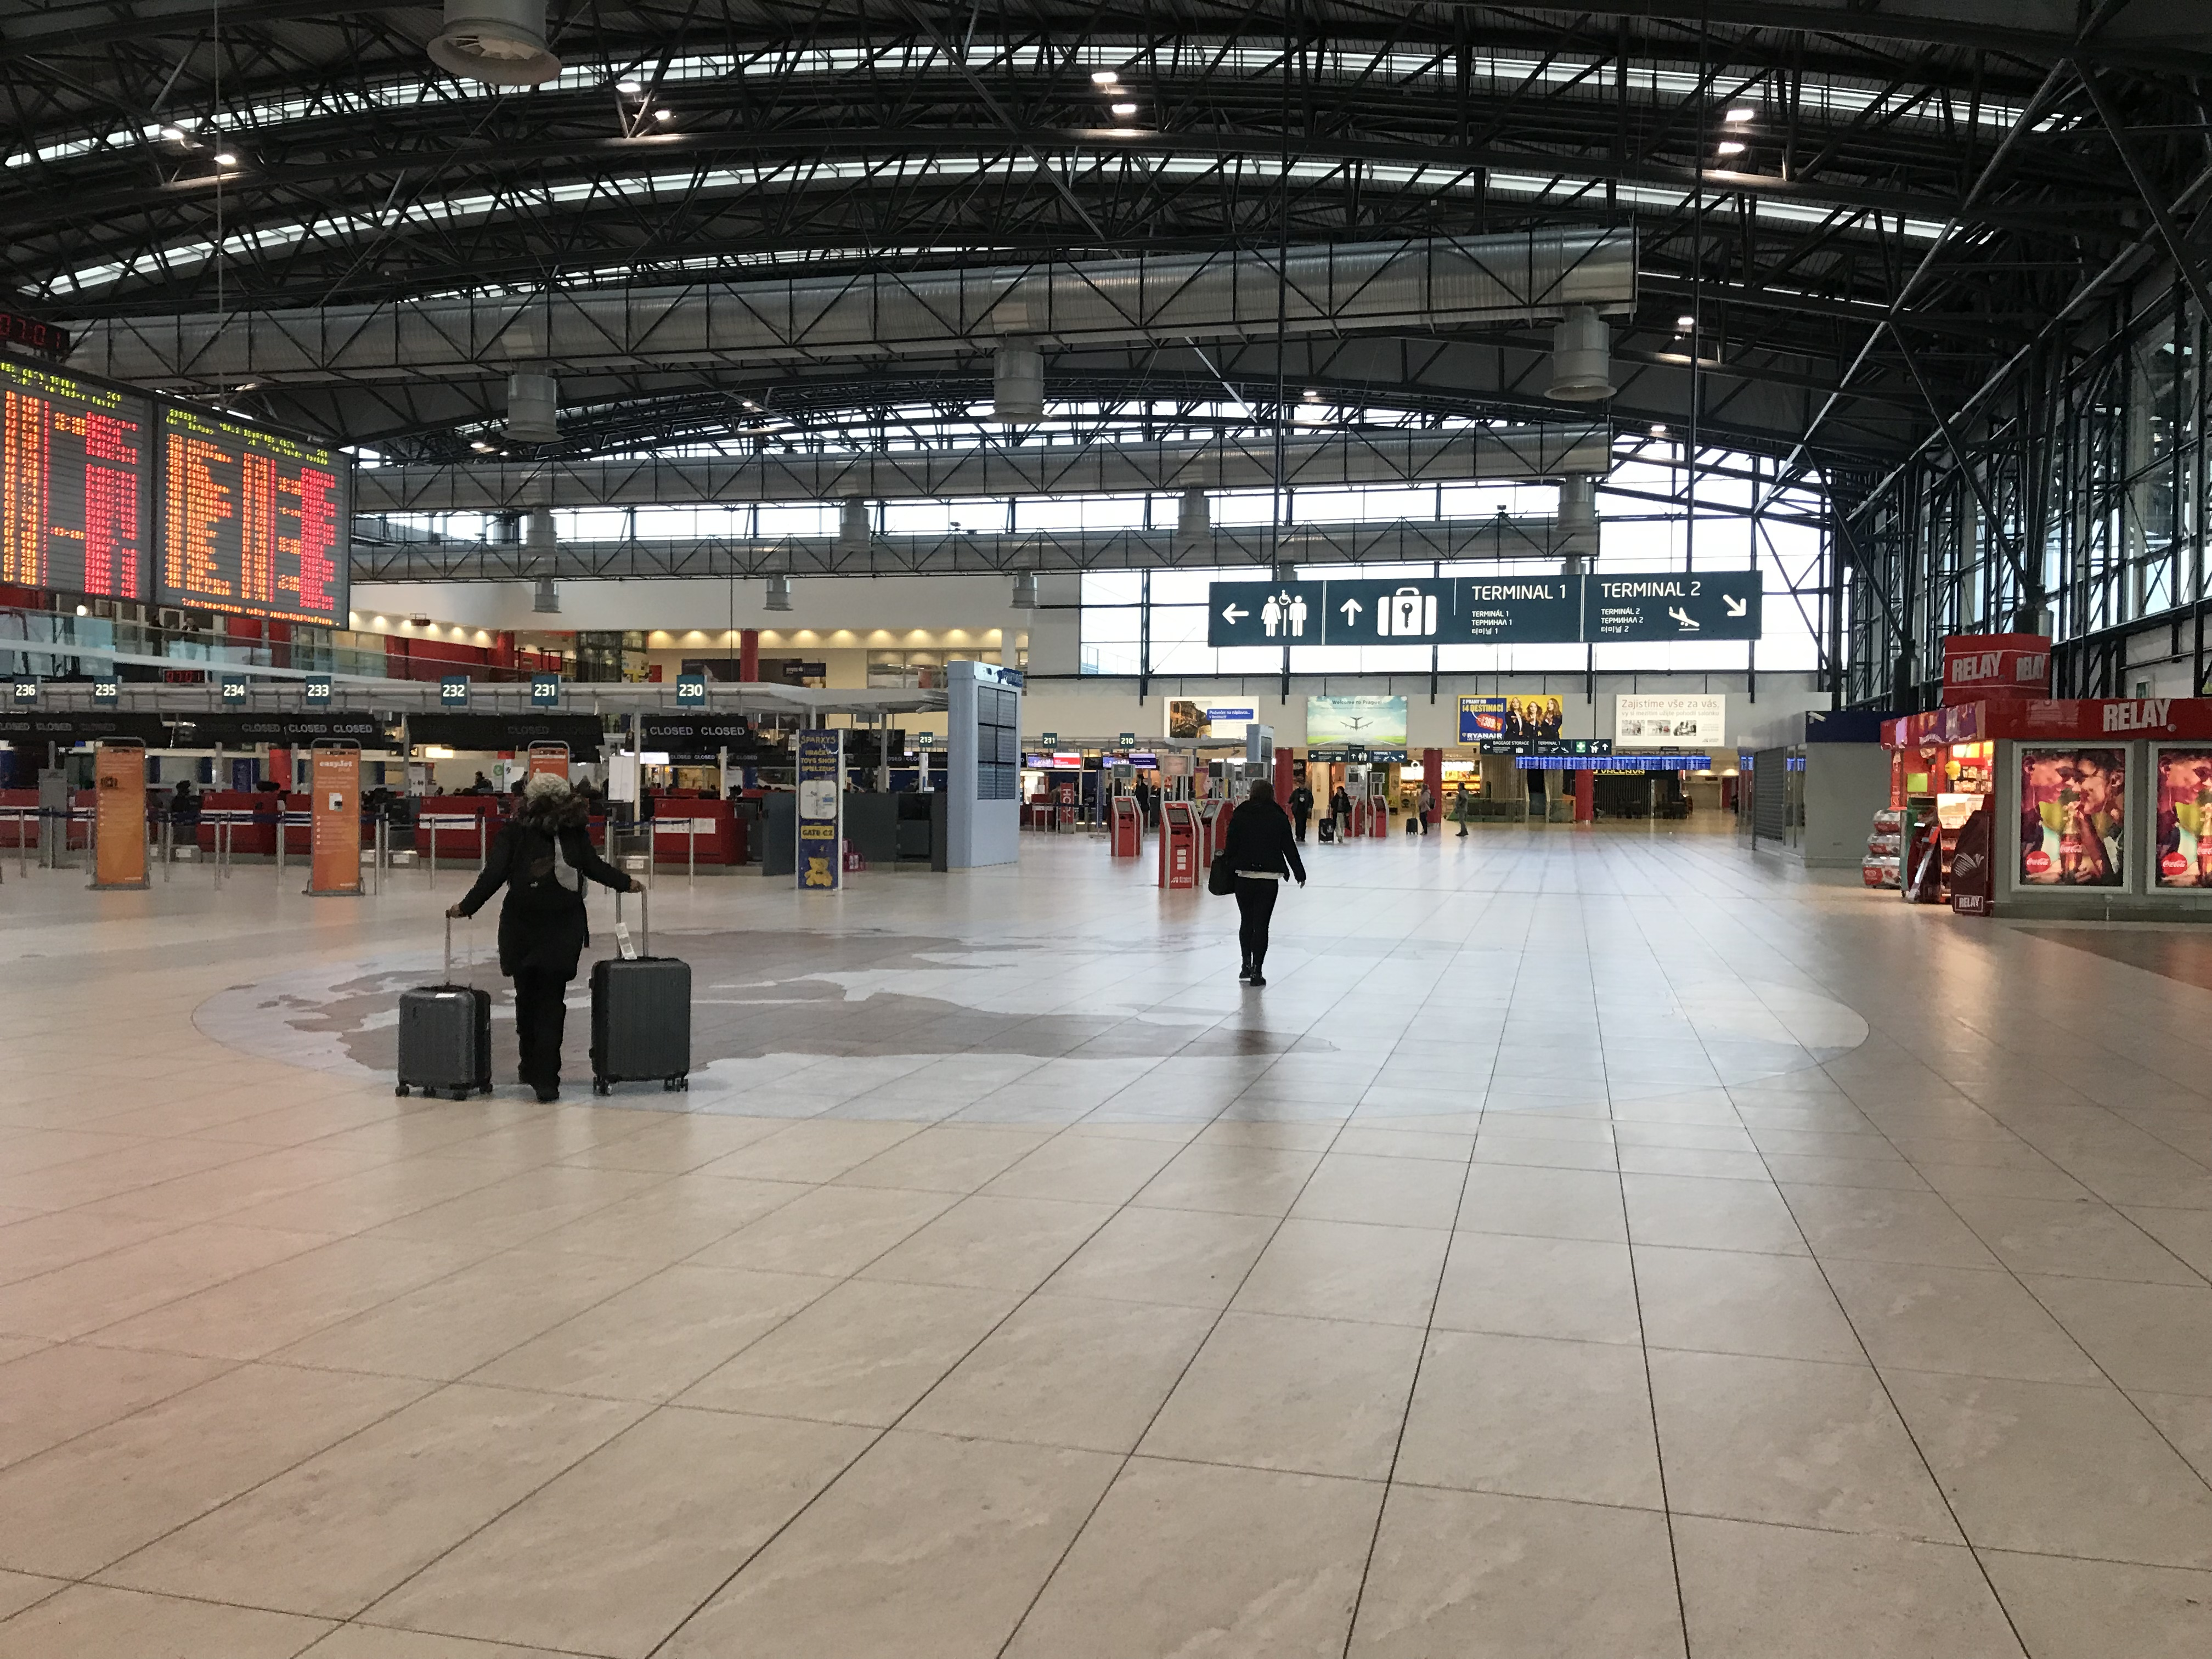 Inside the main hall of the Prague's airport. The airport has two terminals and there are clear signs guiding you to them.